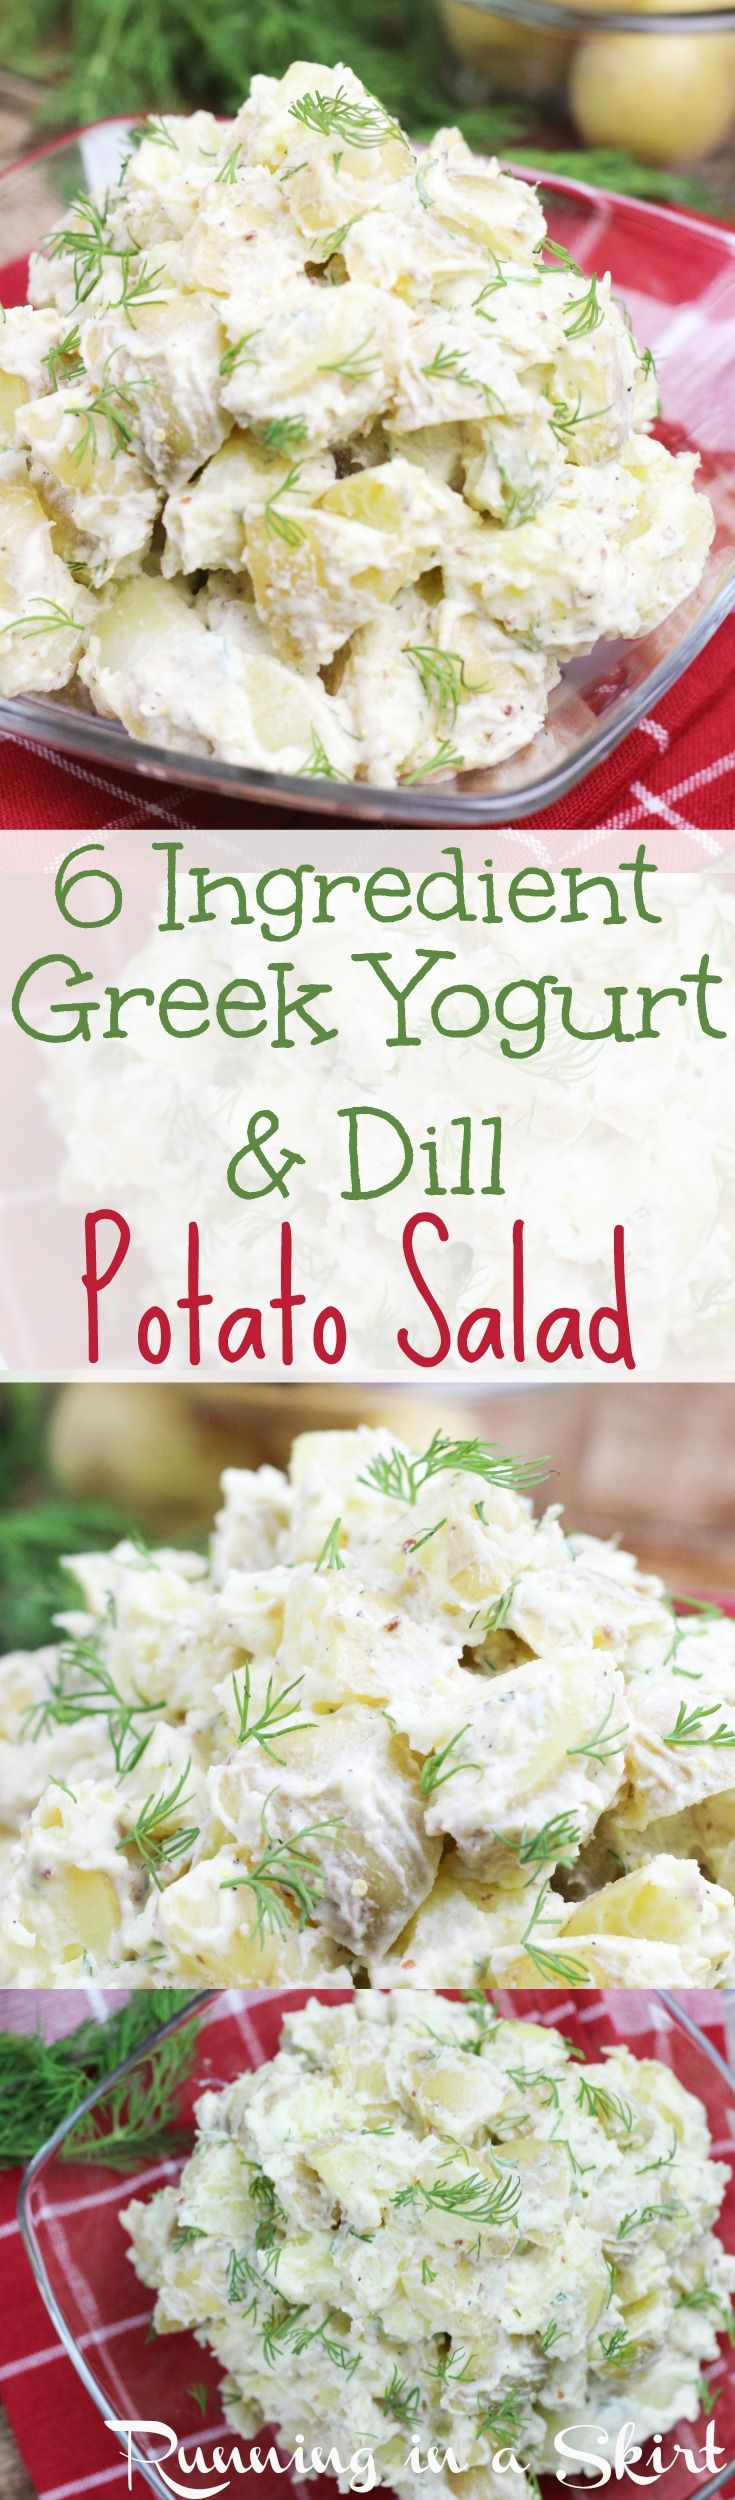 6 Ingredient Healthy Potato Salad! Potato salad doesn't have to be a heavy, calorie rich cookout treat Here's a Healthy Greek Yogurt potato salad with dill recipe. It has low calories, big flavor and no mayo! So easy, simple and perfect for summer cookouts like Memorial Day, Labor Day and 4th of July! / Running in a Skirt